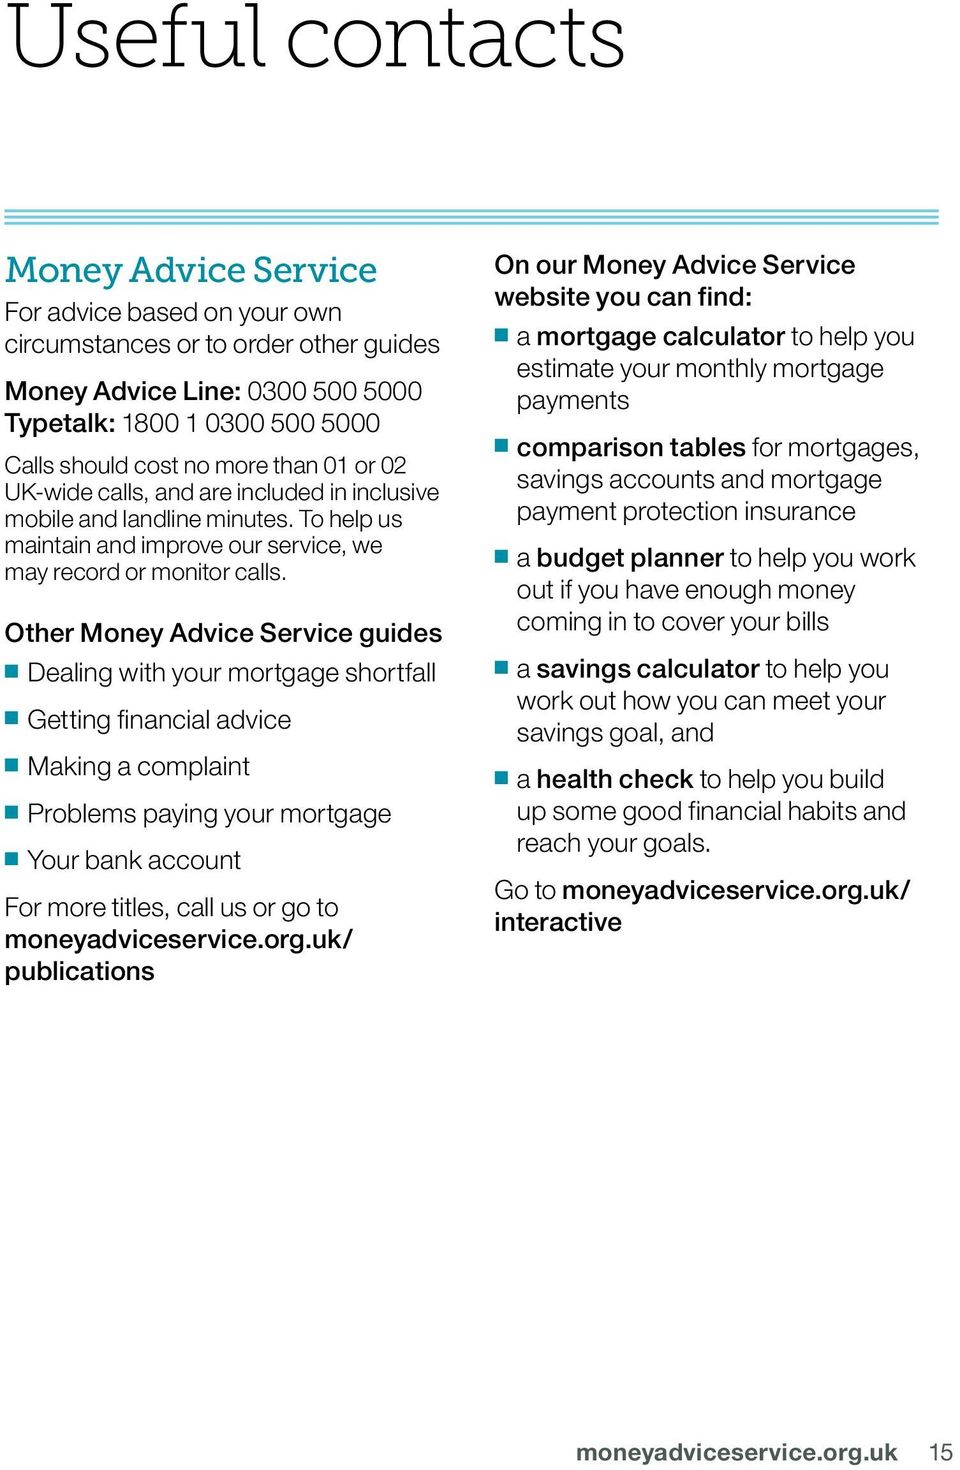 Other Money Advice Service guides Dealing with your mortgage shortfall Getting financial advice Making a complaint Problems paying your mortgage Your bank account For more titles, call us or go to